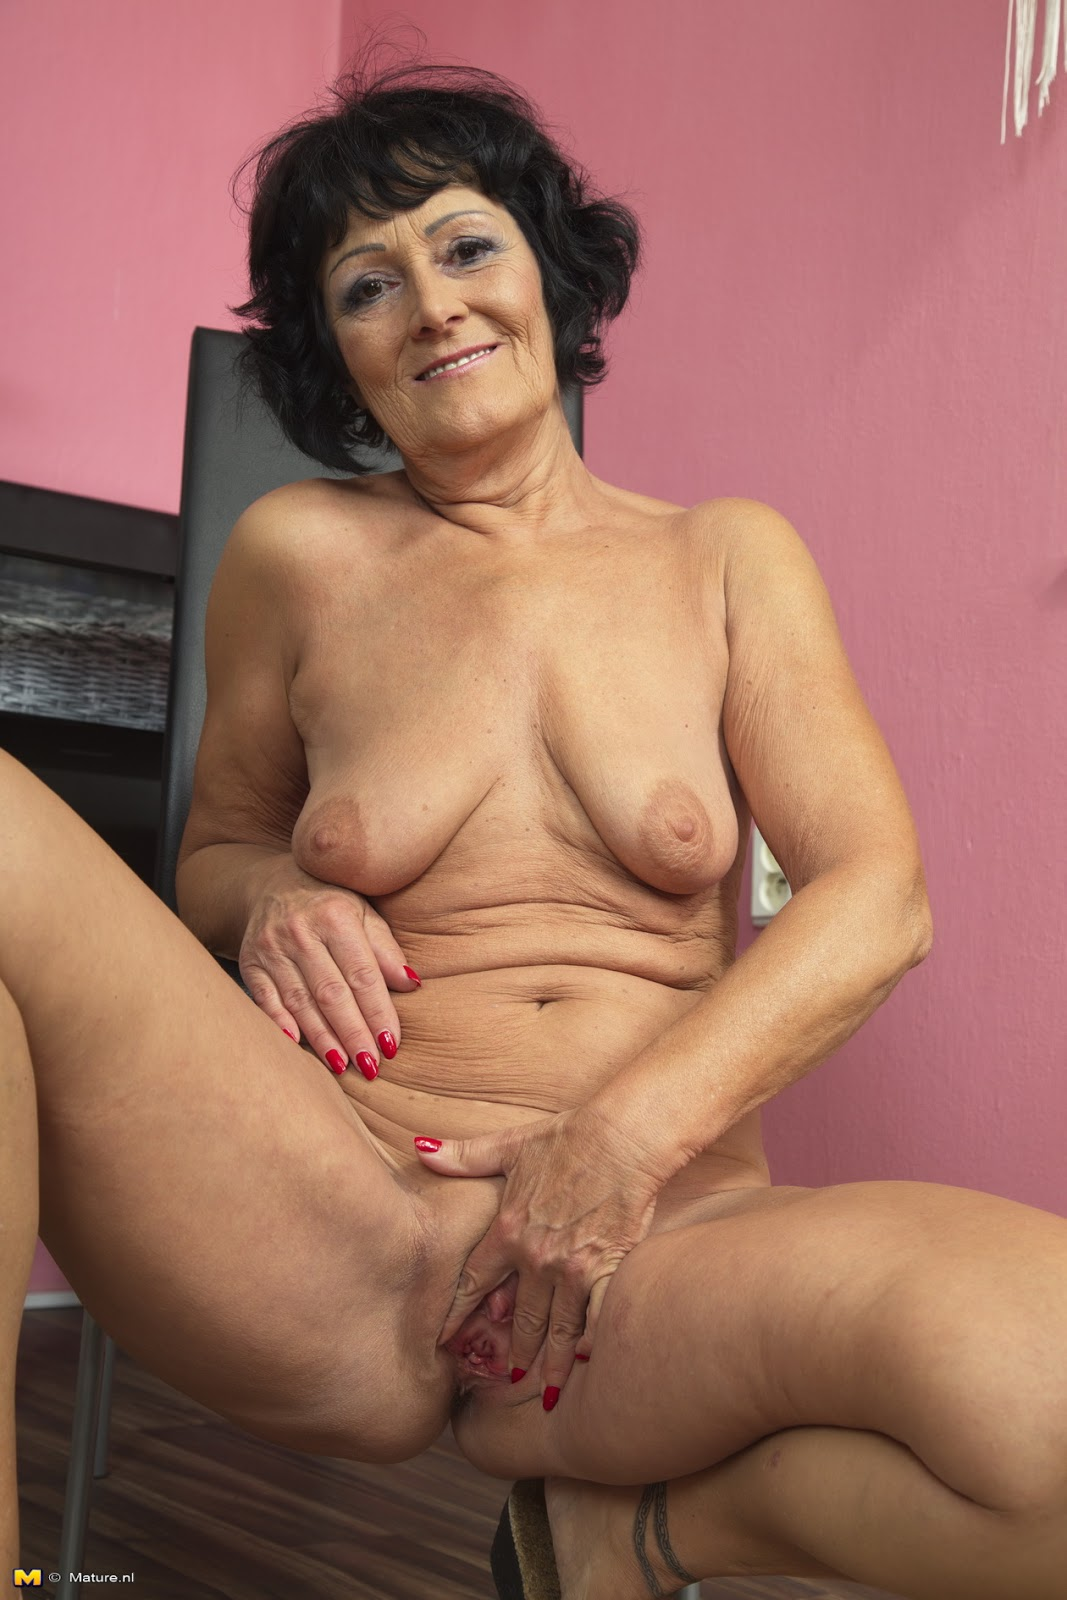 horny hot mature jpg 1080x810